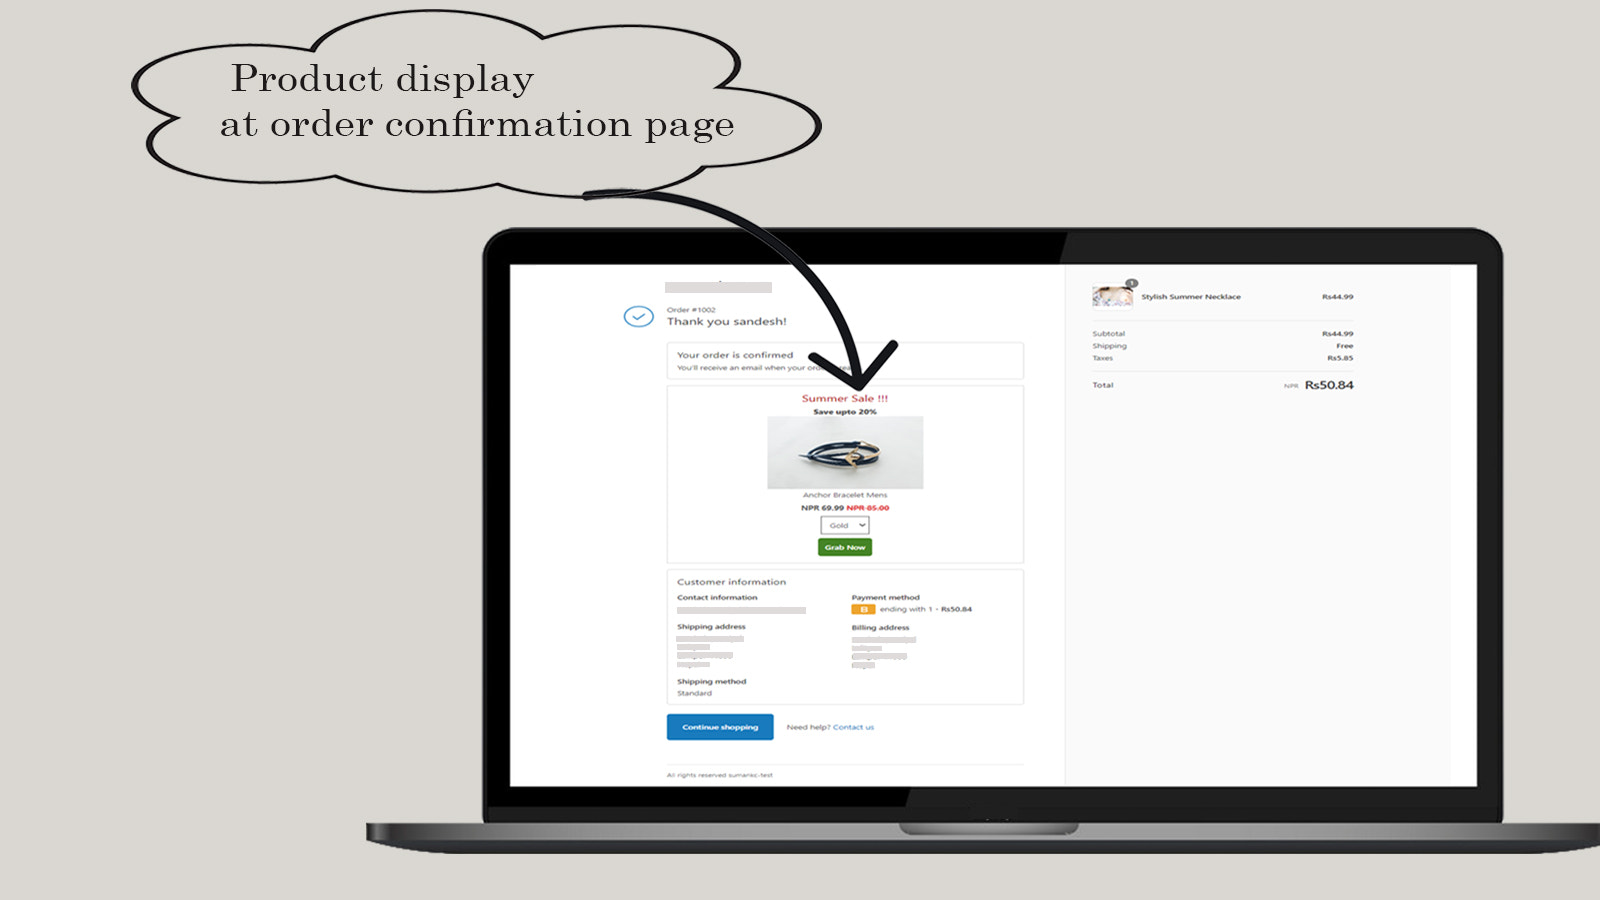 Upsell display at order confirmation page